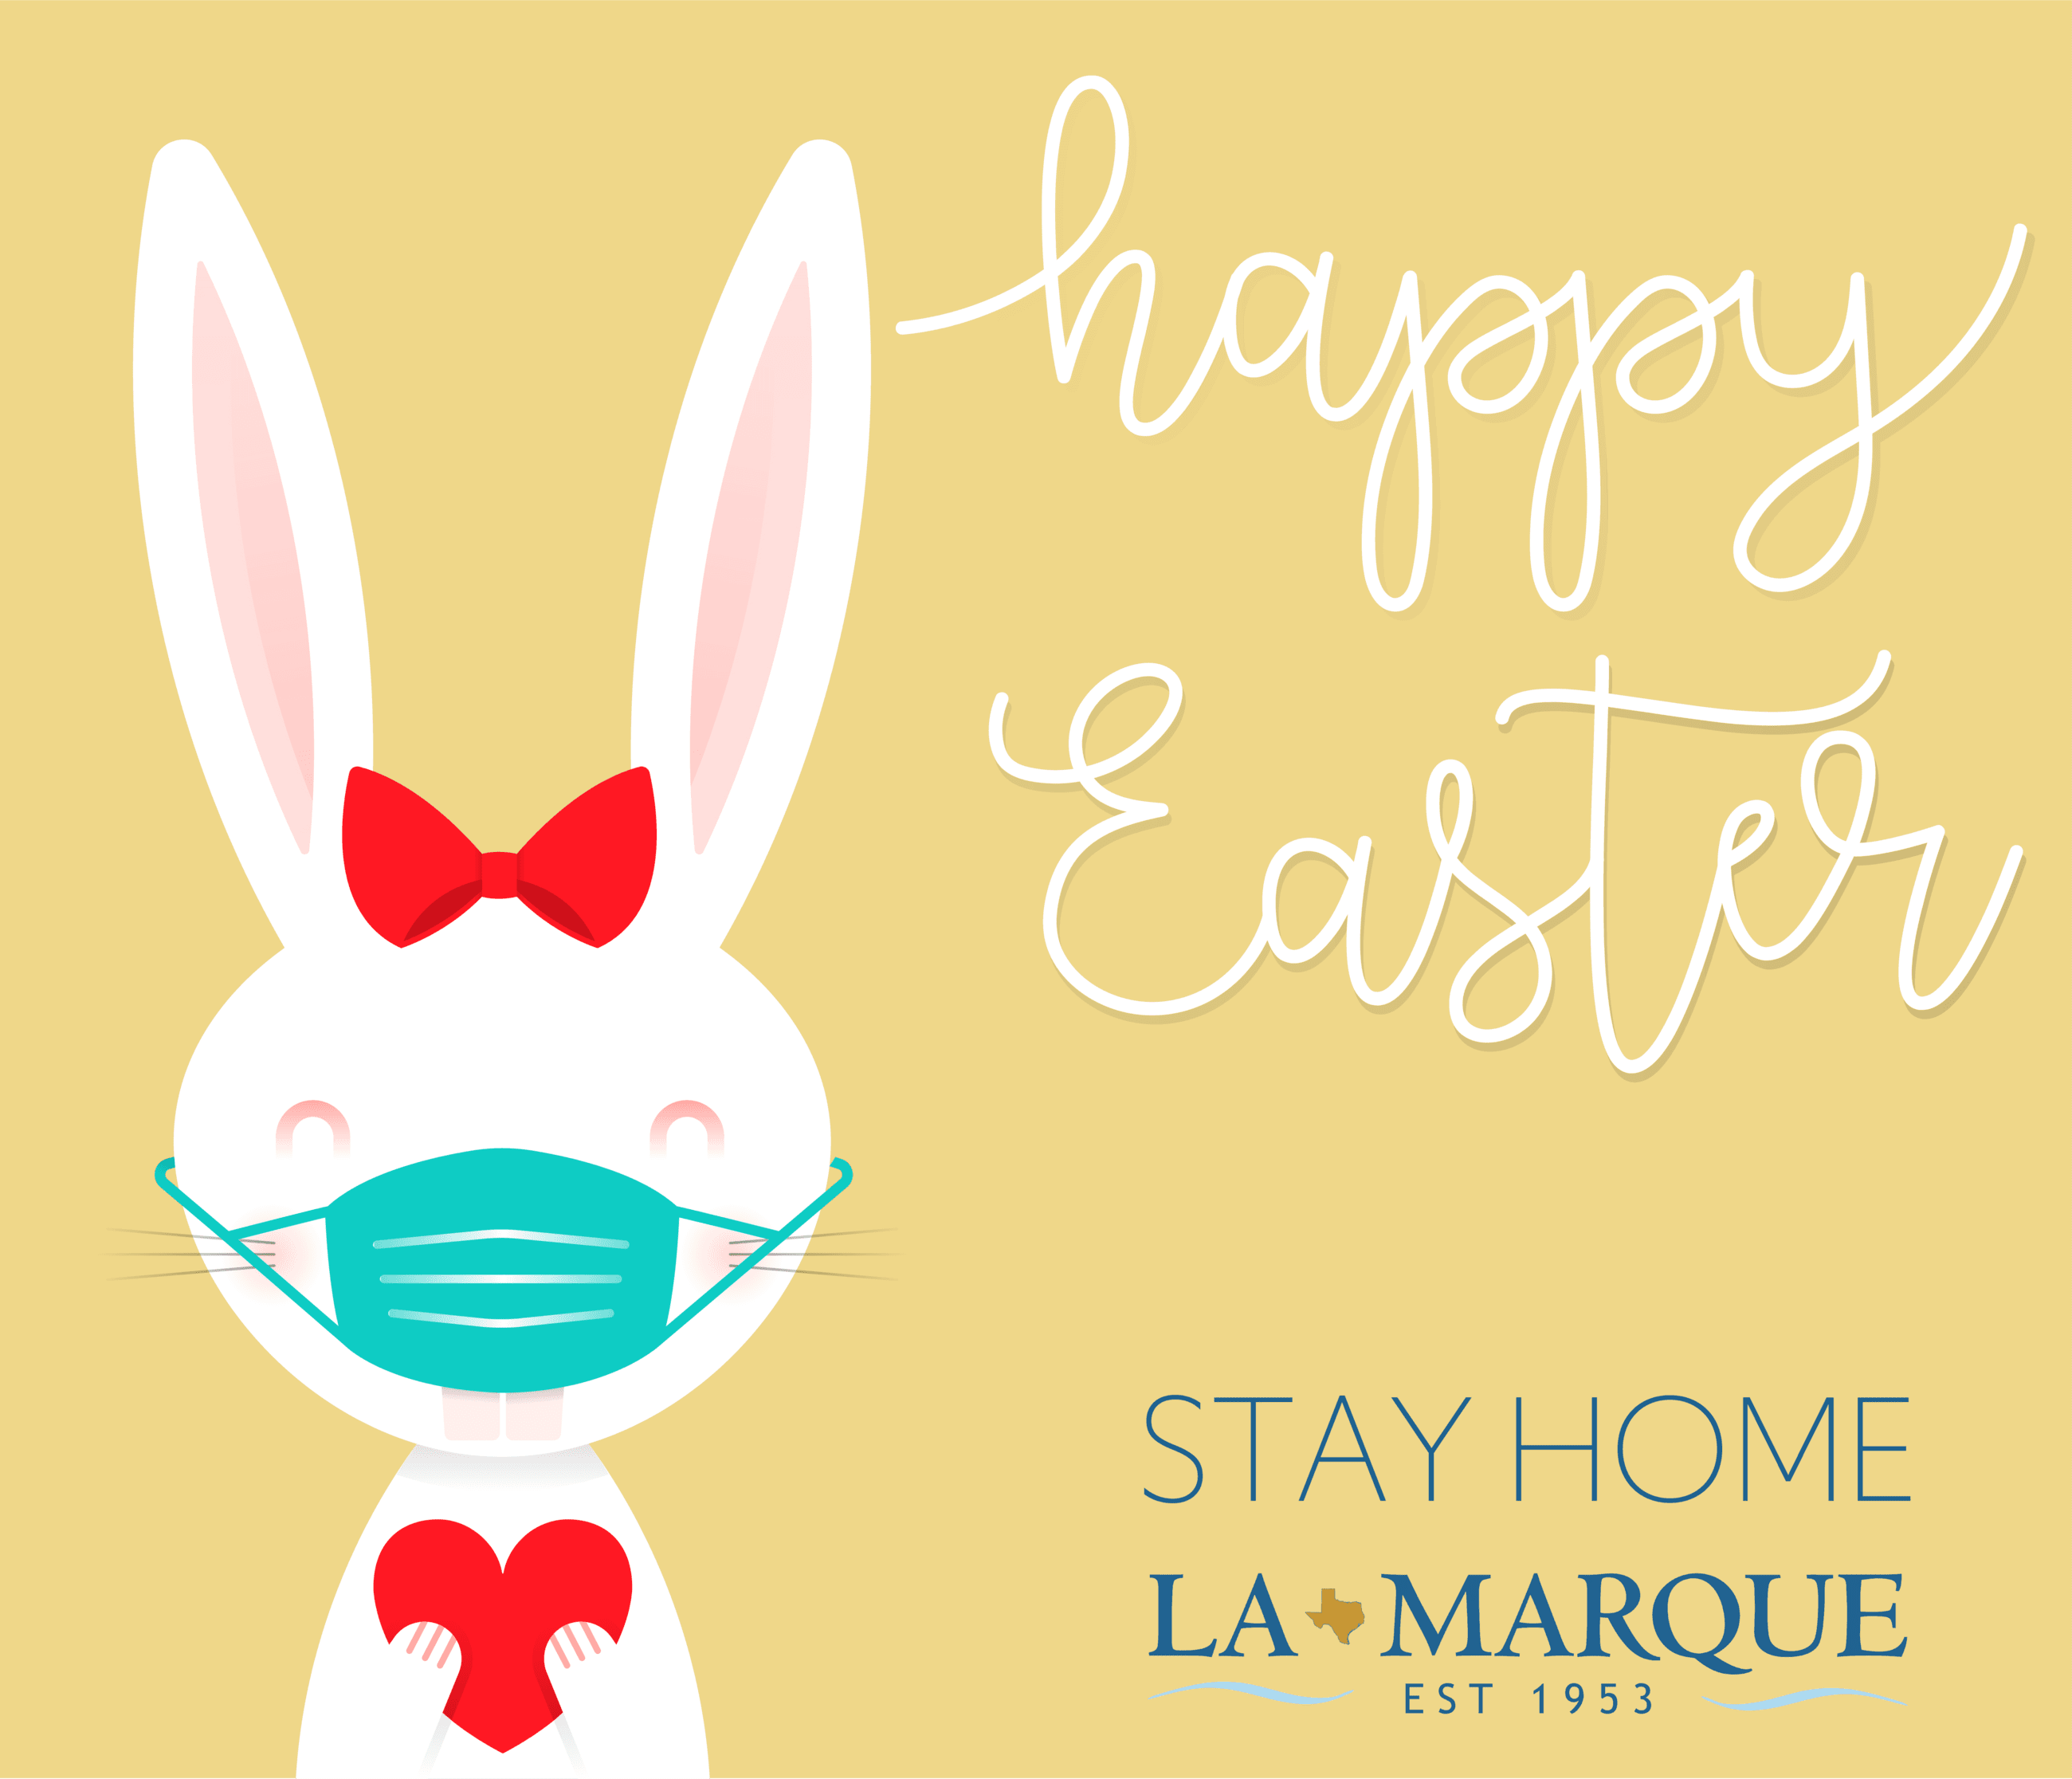 Easter Bunny with mask graphic. Stay Home La Marque.